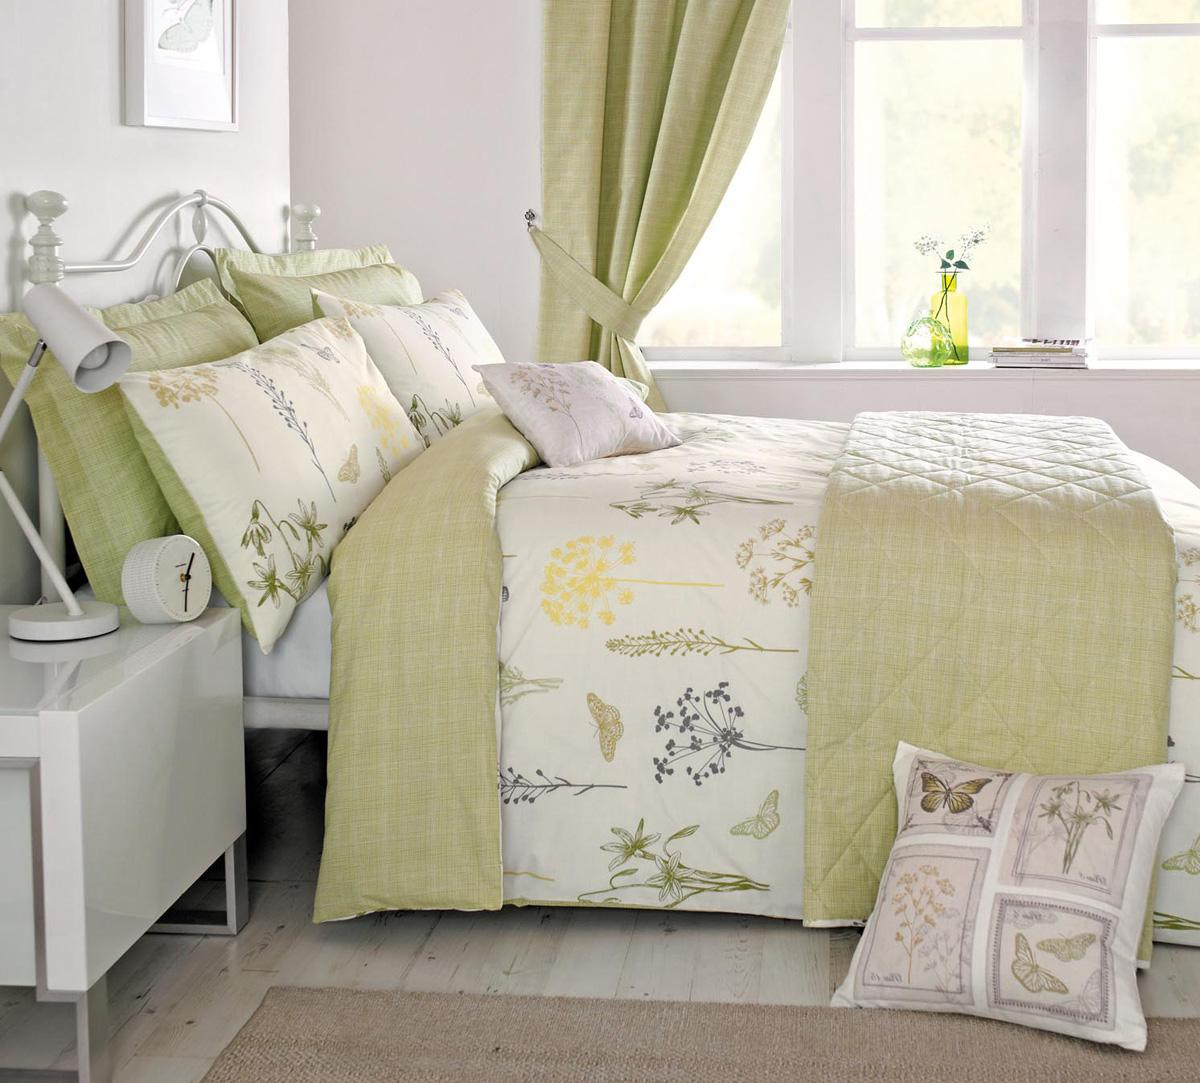 botanique bedding set in green  free uk delivery  terrys fabrics - botanique bedding set